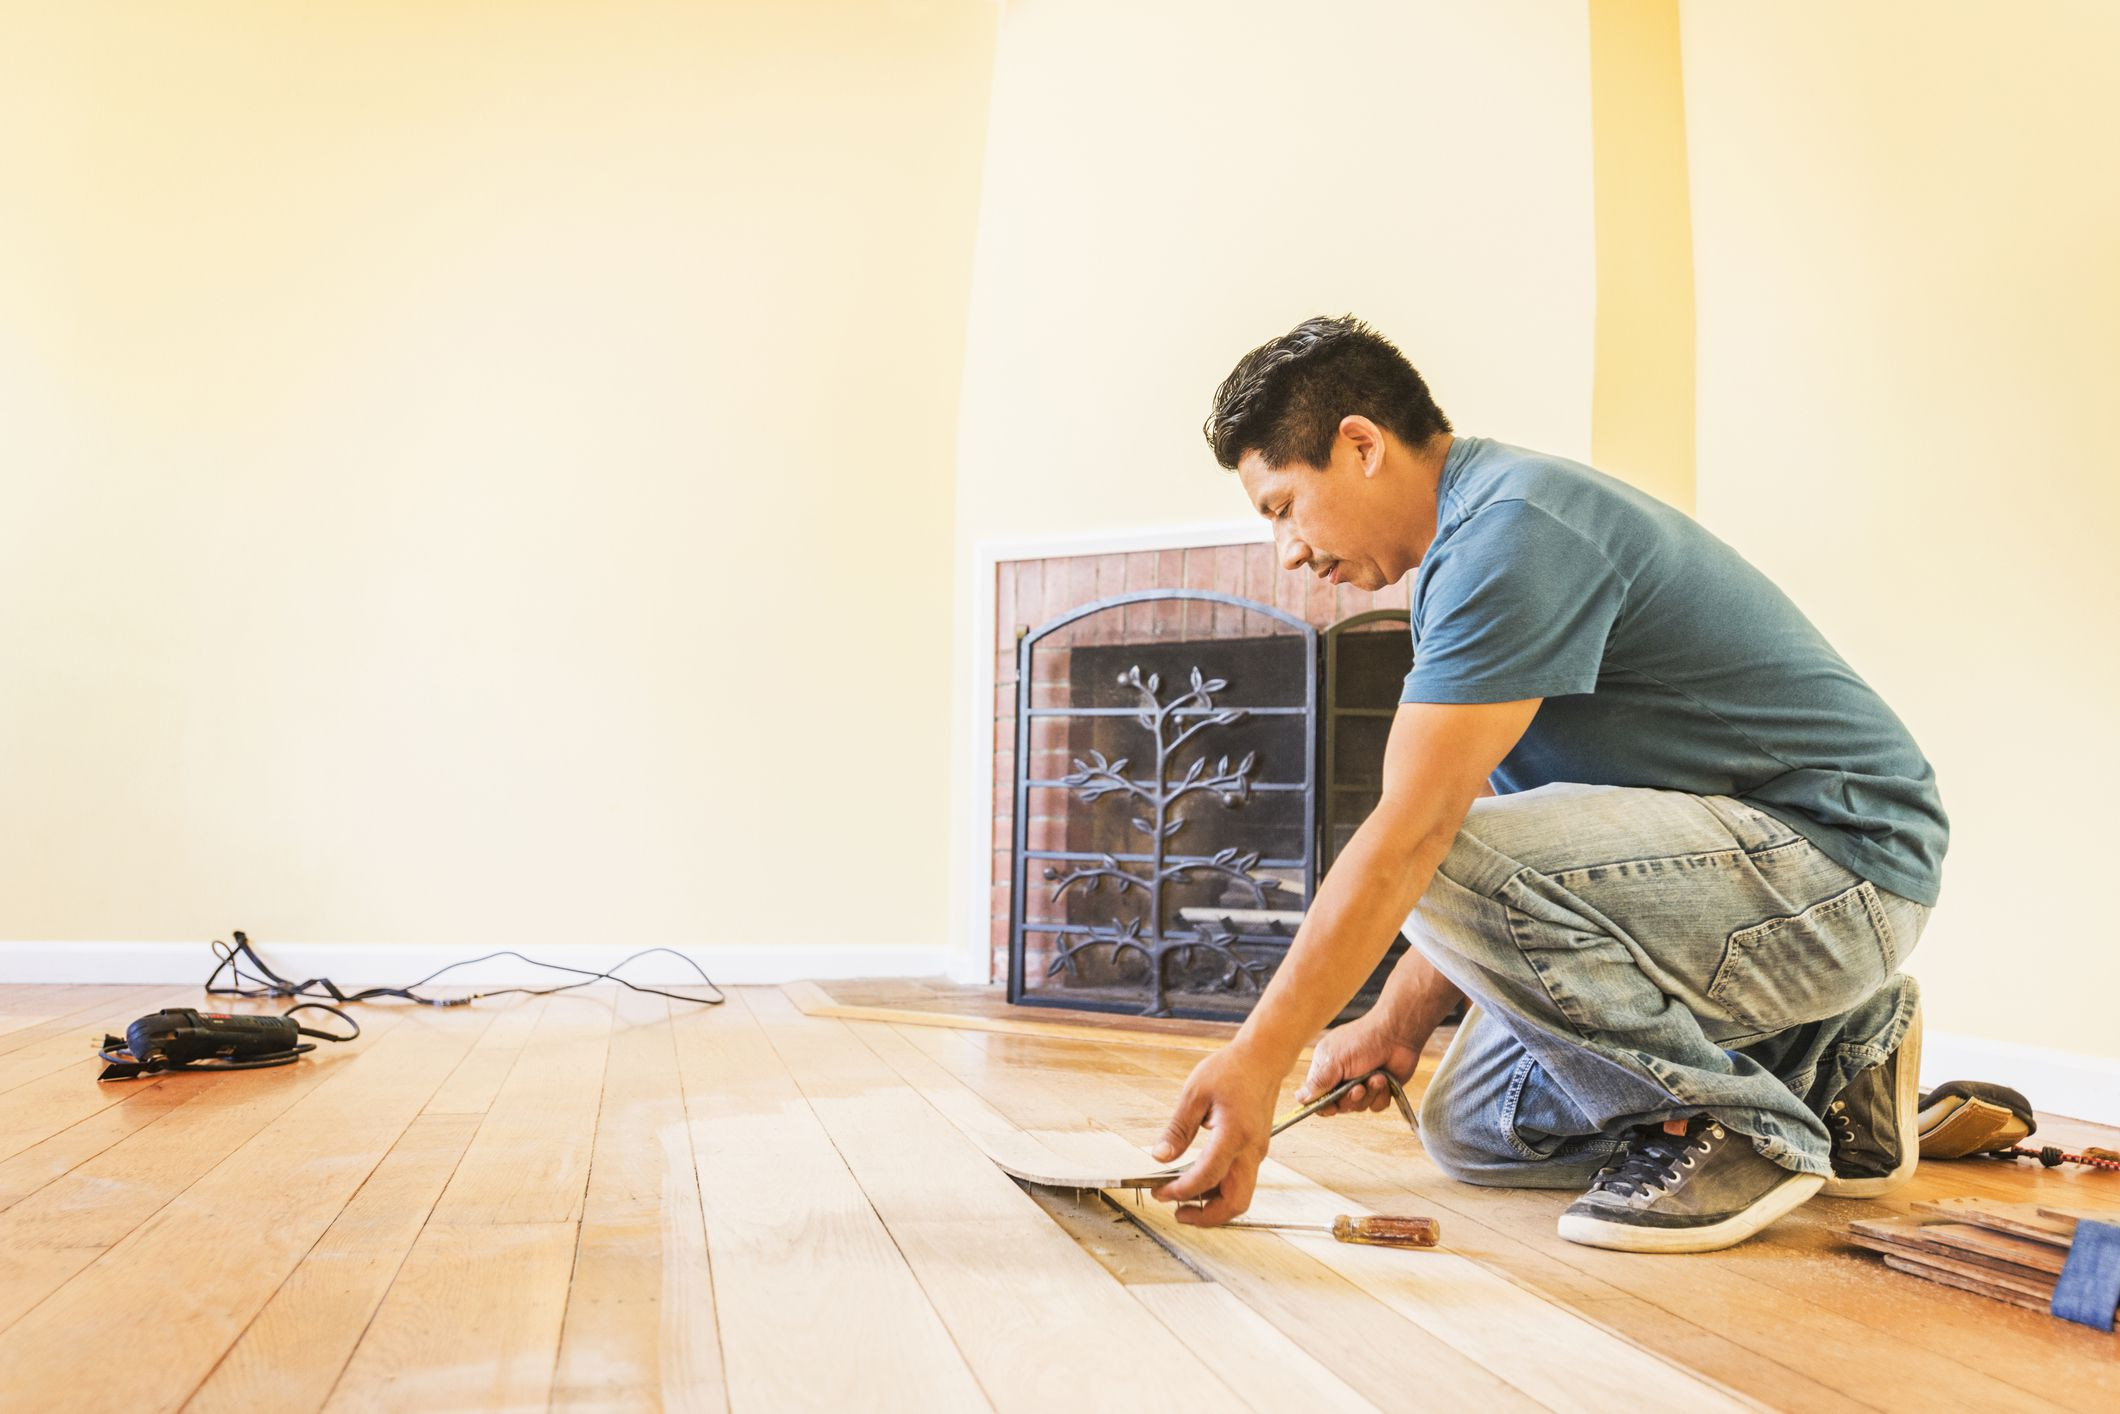 Long Length Hardwood Flooring Of Hardwood Installer How to Hire and What to Expect within Installing Wood Flooring 592016327 57af51a23df78cd39cfa08d9